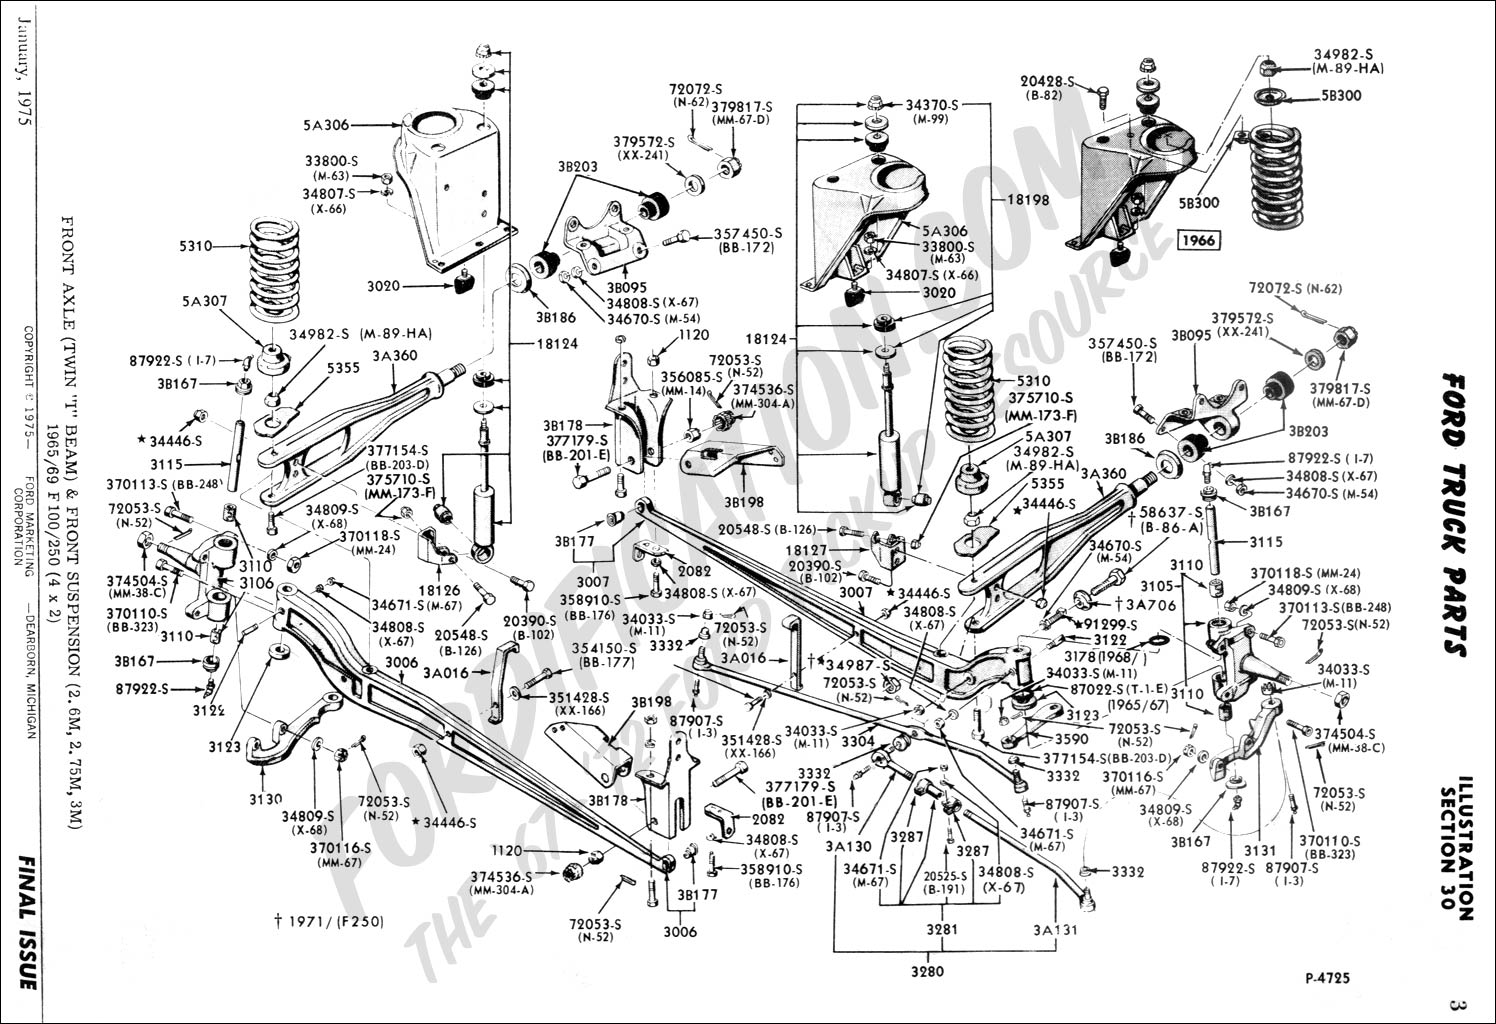 hight resolution of 2003 f150 4wd suspension diagram simple wiring post rh 17 asiagourmet igb de 2003 f350 front end diagram 2003 f250 front suspension diagram